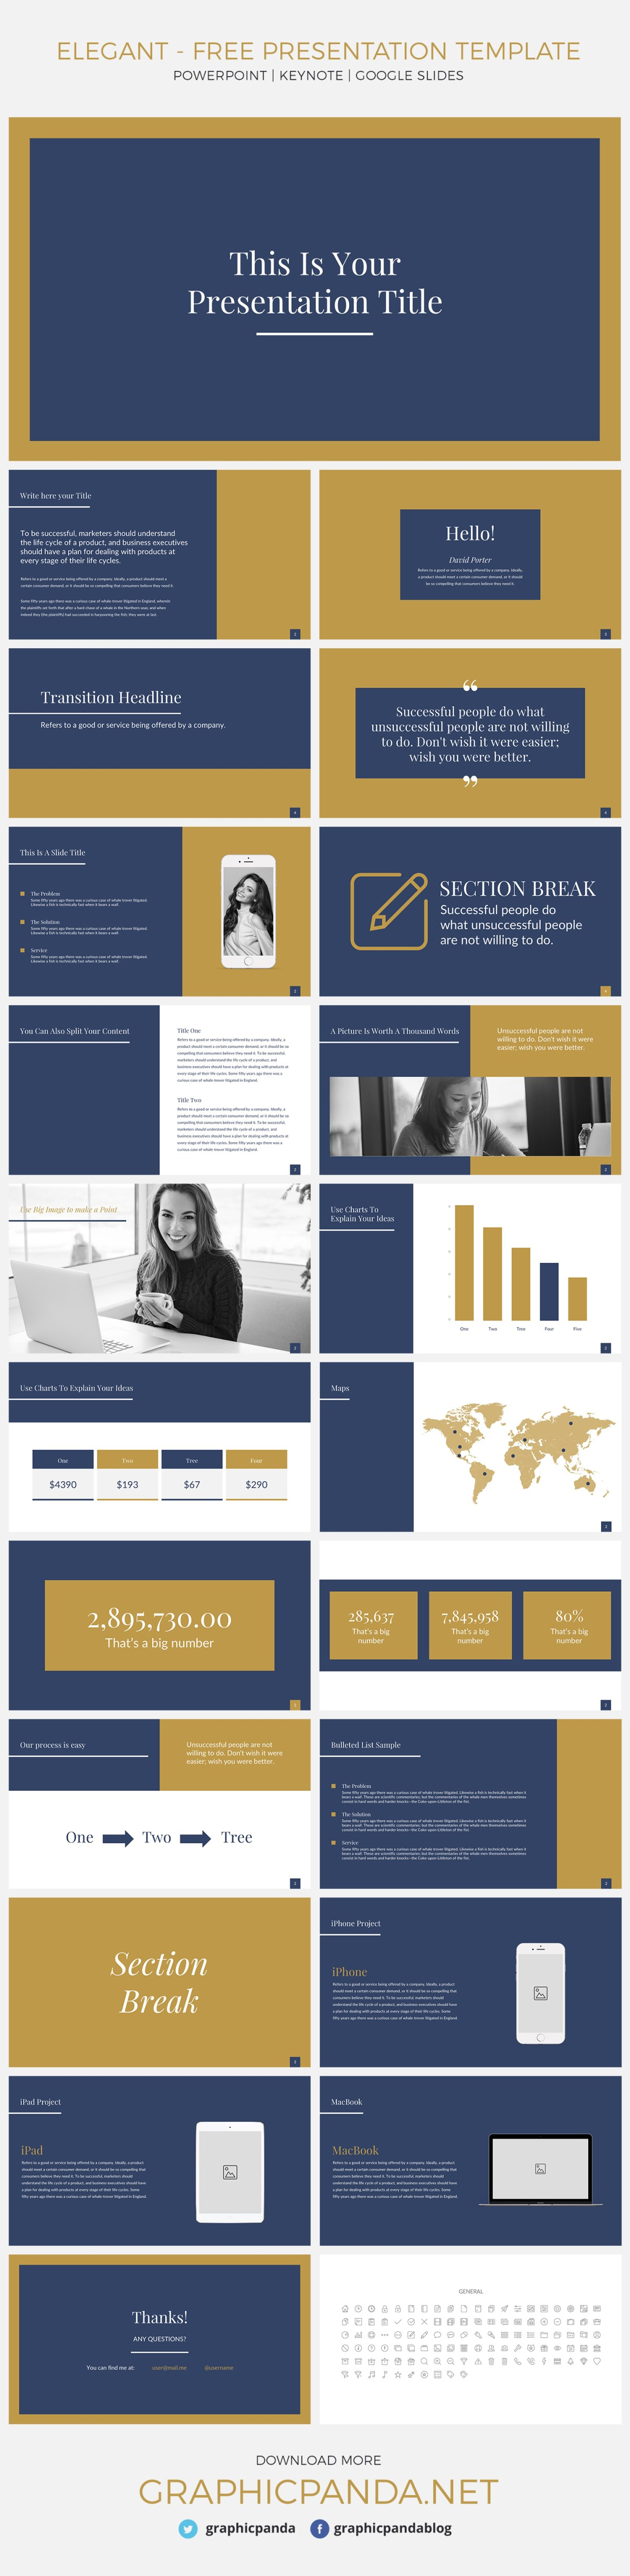 This free Elegant presentation template for Microsoft powerpoint and google slides and Apple keynote is a super classy pitch deck template that presents you with a refreshing color scheme that isn't boring but keeps you looking professional. Each slide has a burst of color that makes your data pop out but not distract your audience from your overall point. I have handpicked the top 3 slides that I believe are super modern and helpful.